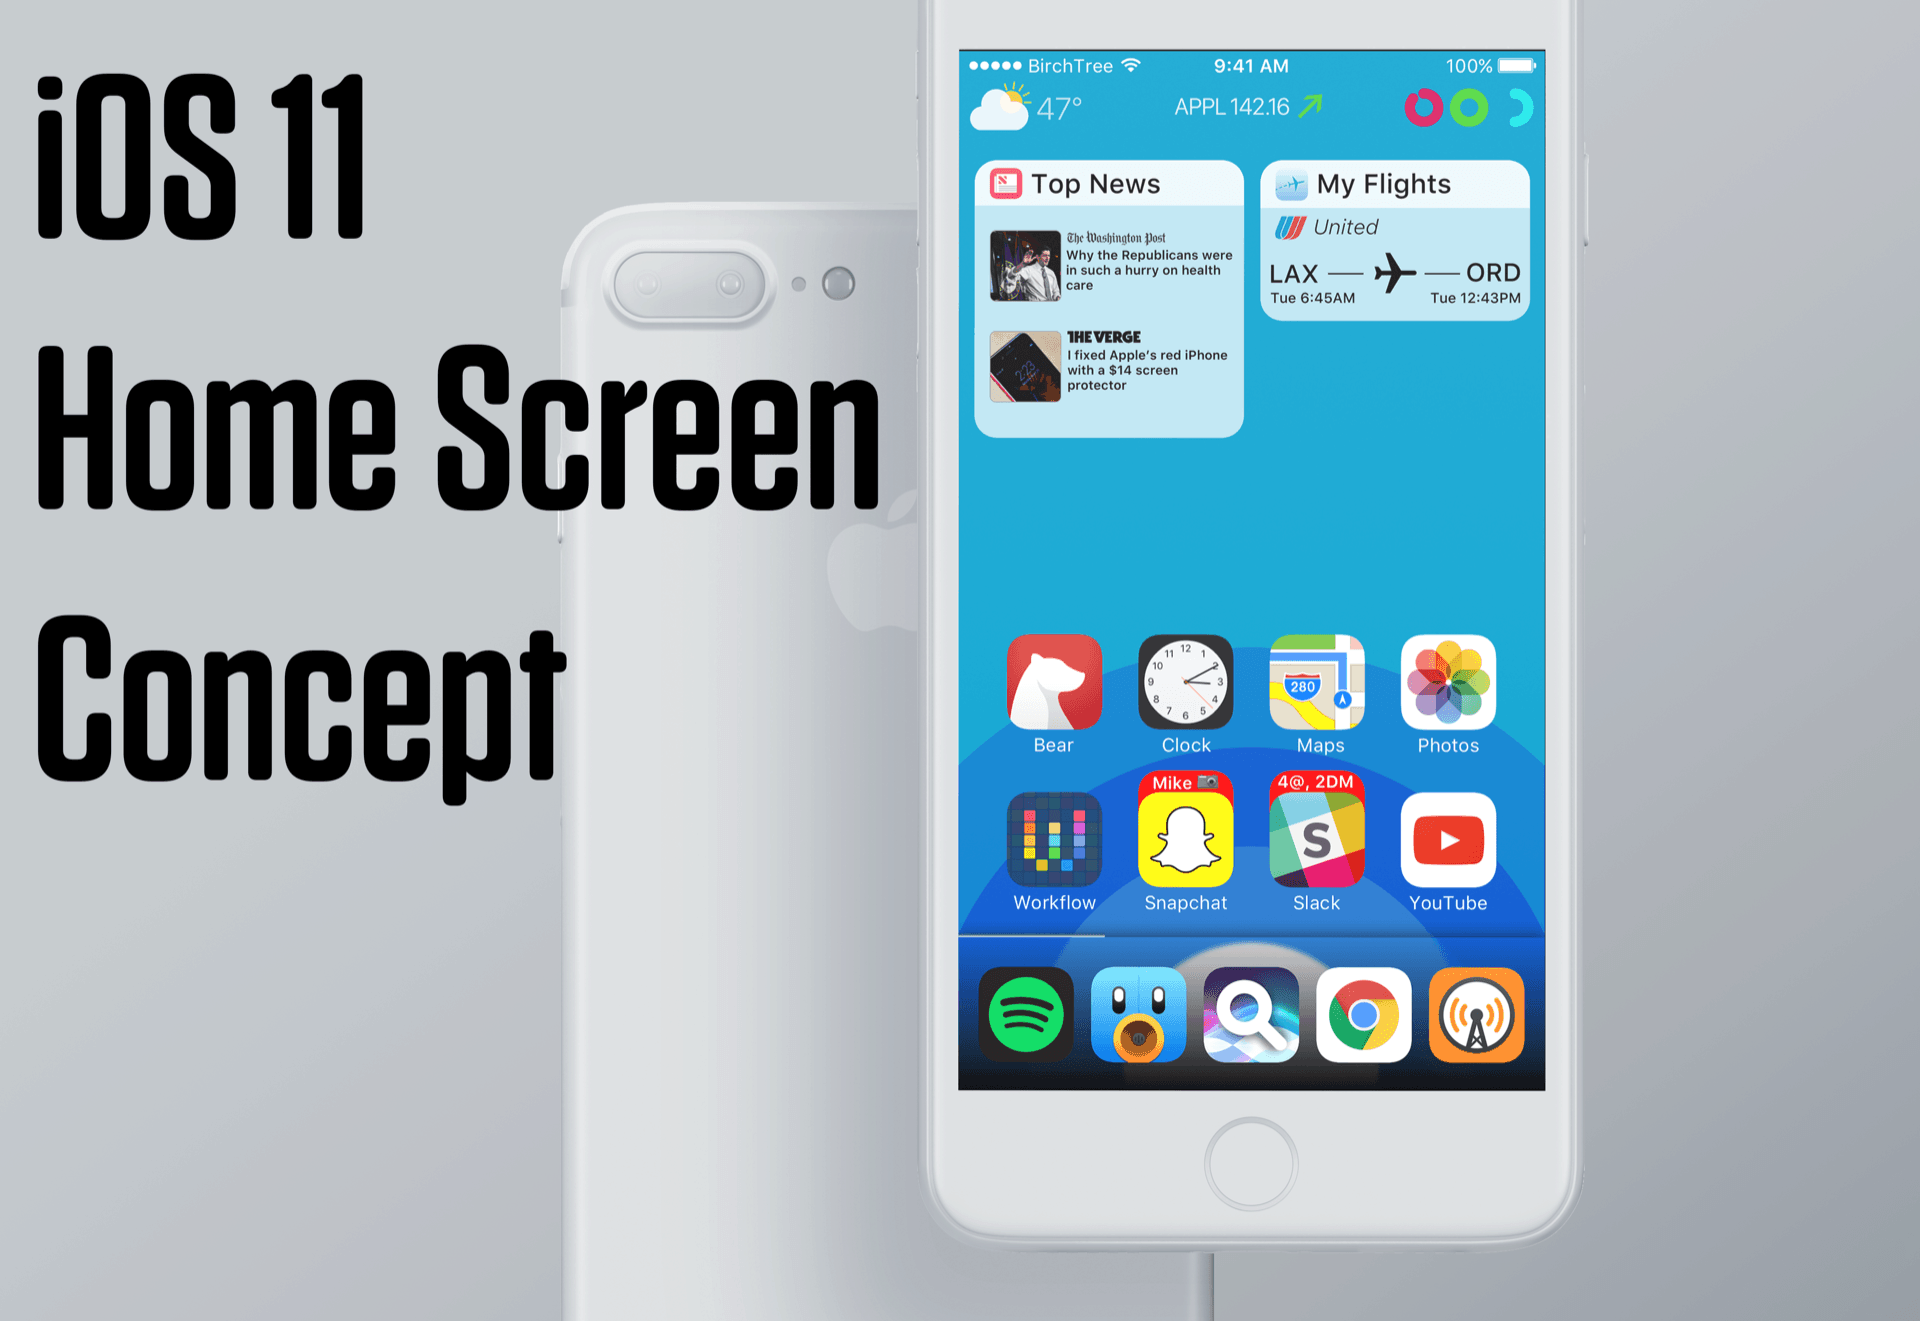 The Home screen becomes more than just an app launcher.